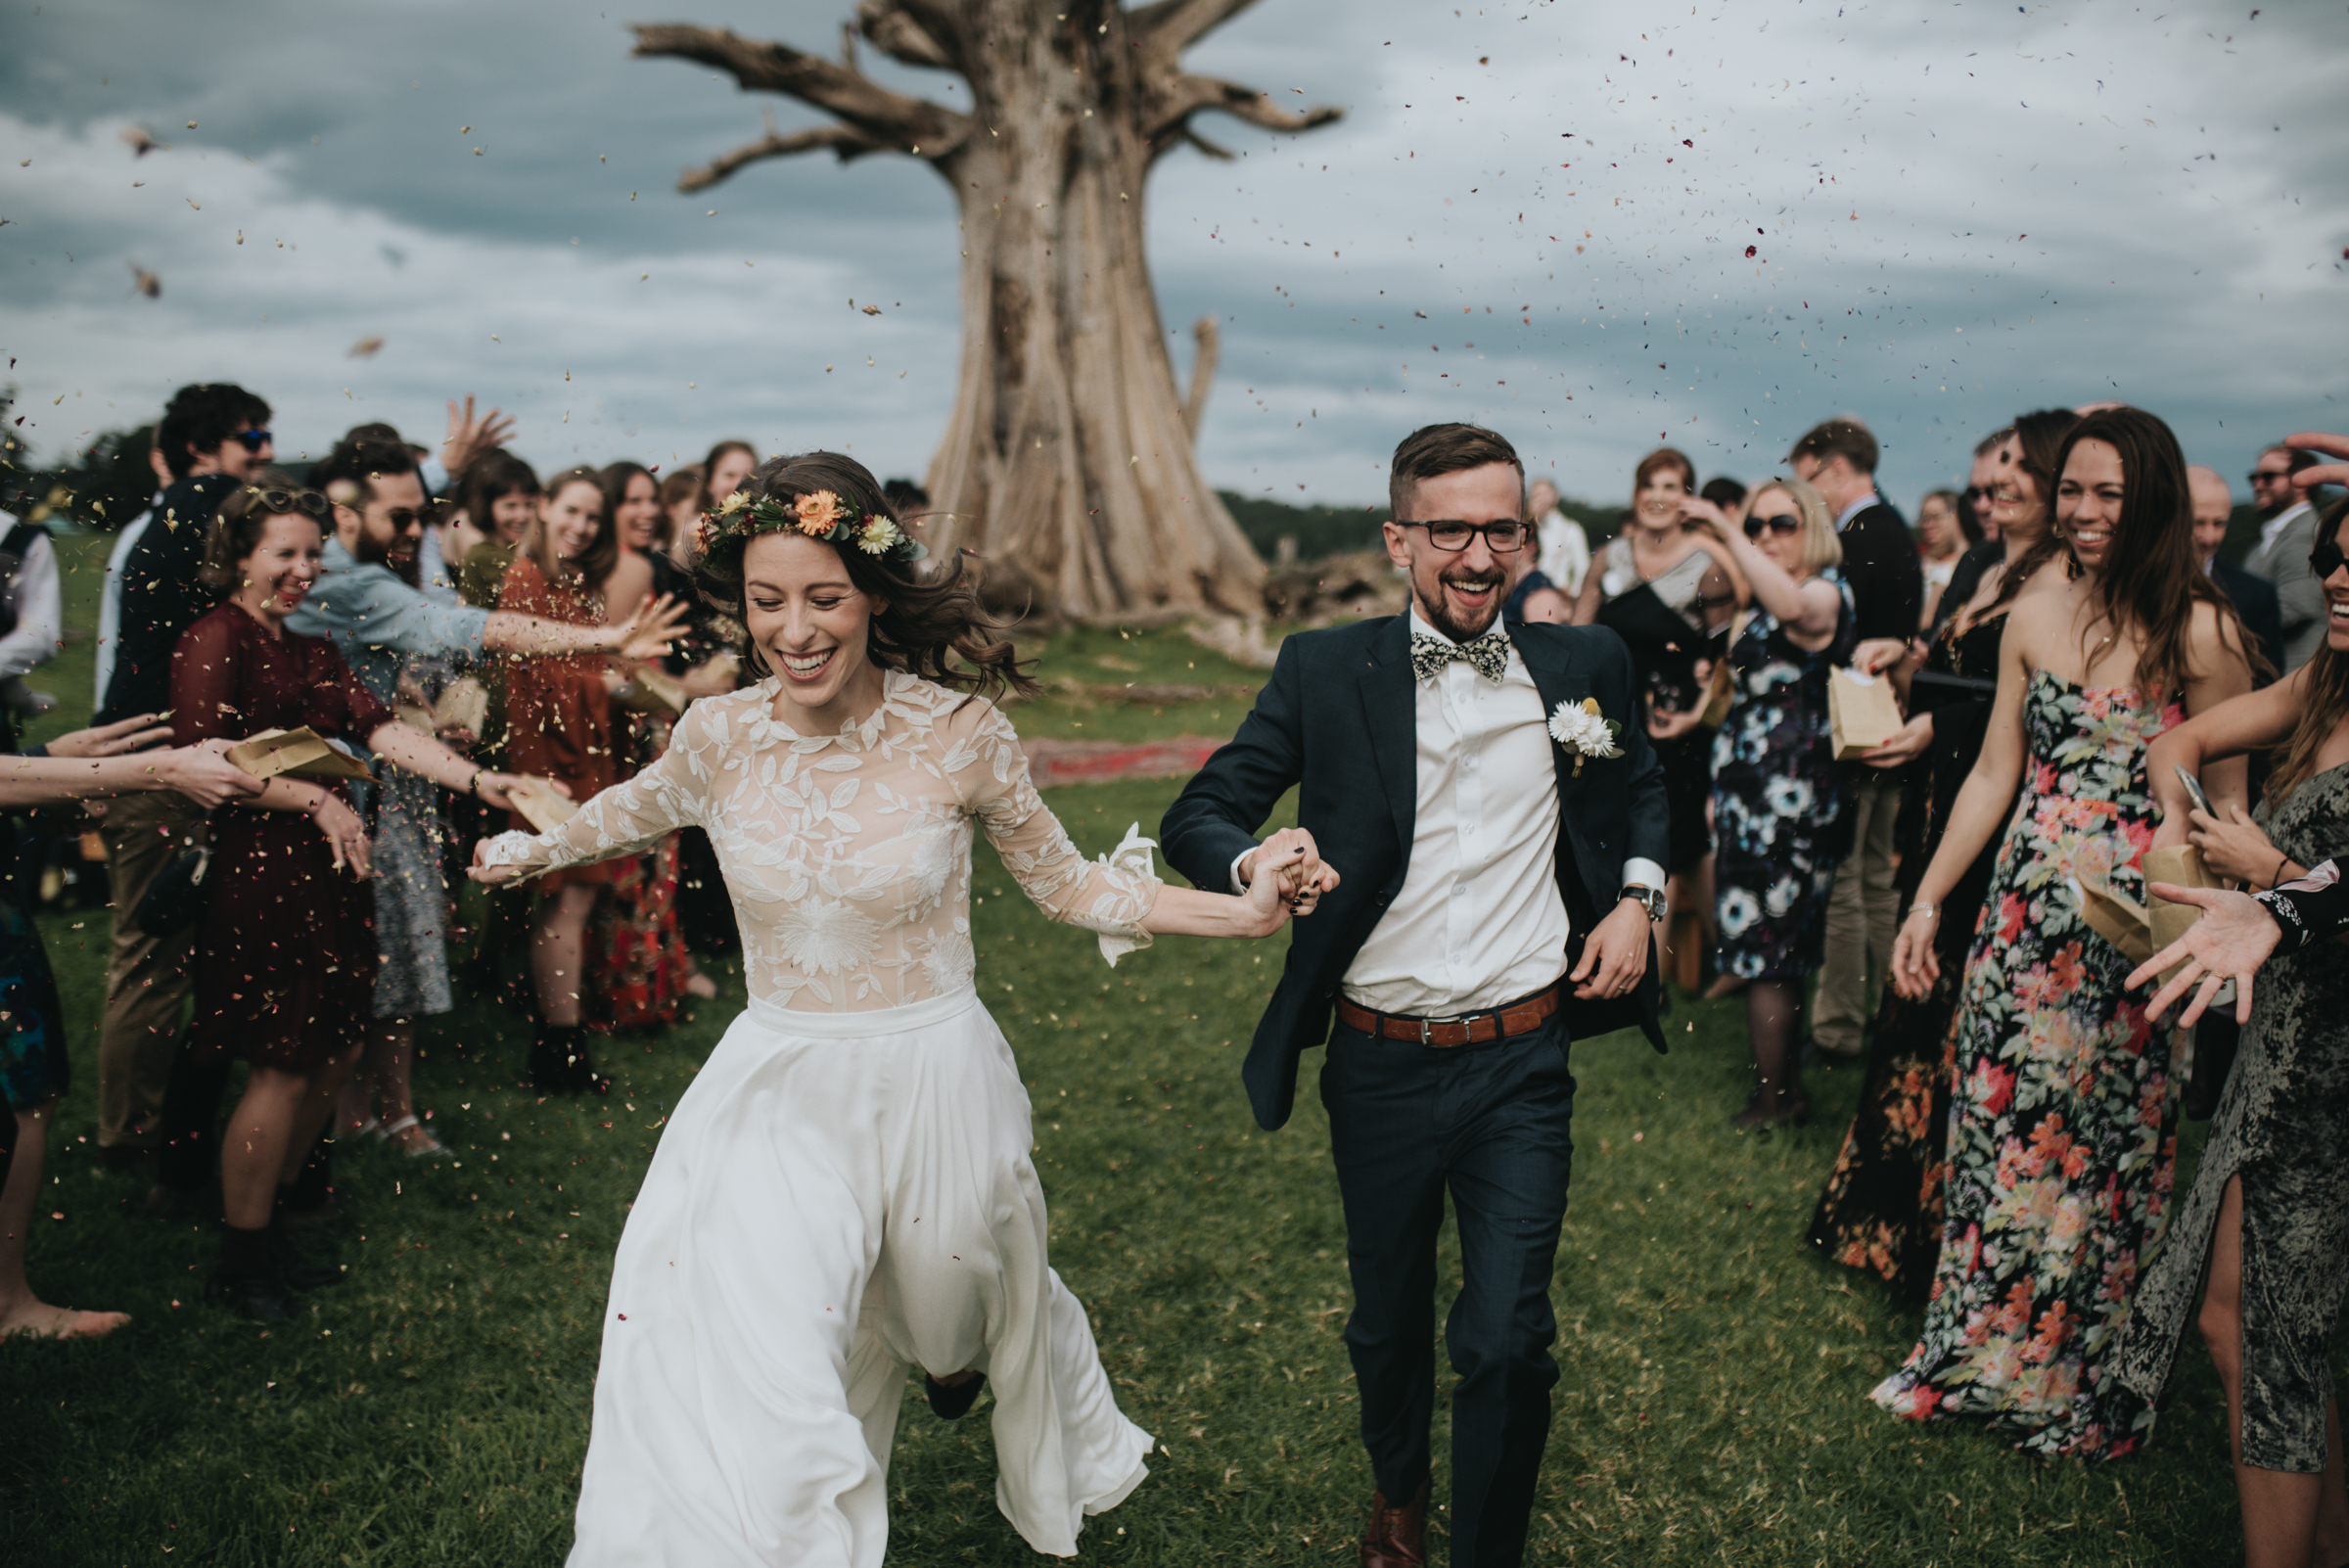 Joyful just married couple photographed by Ben Sowry